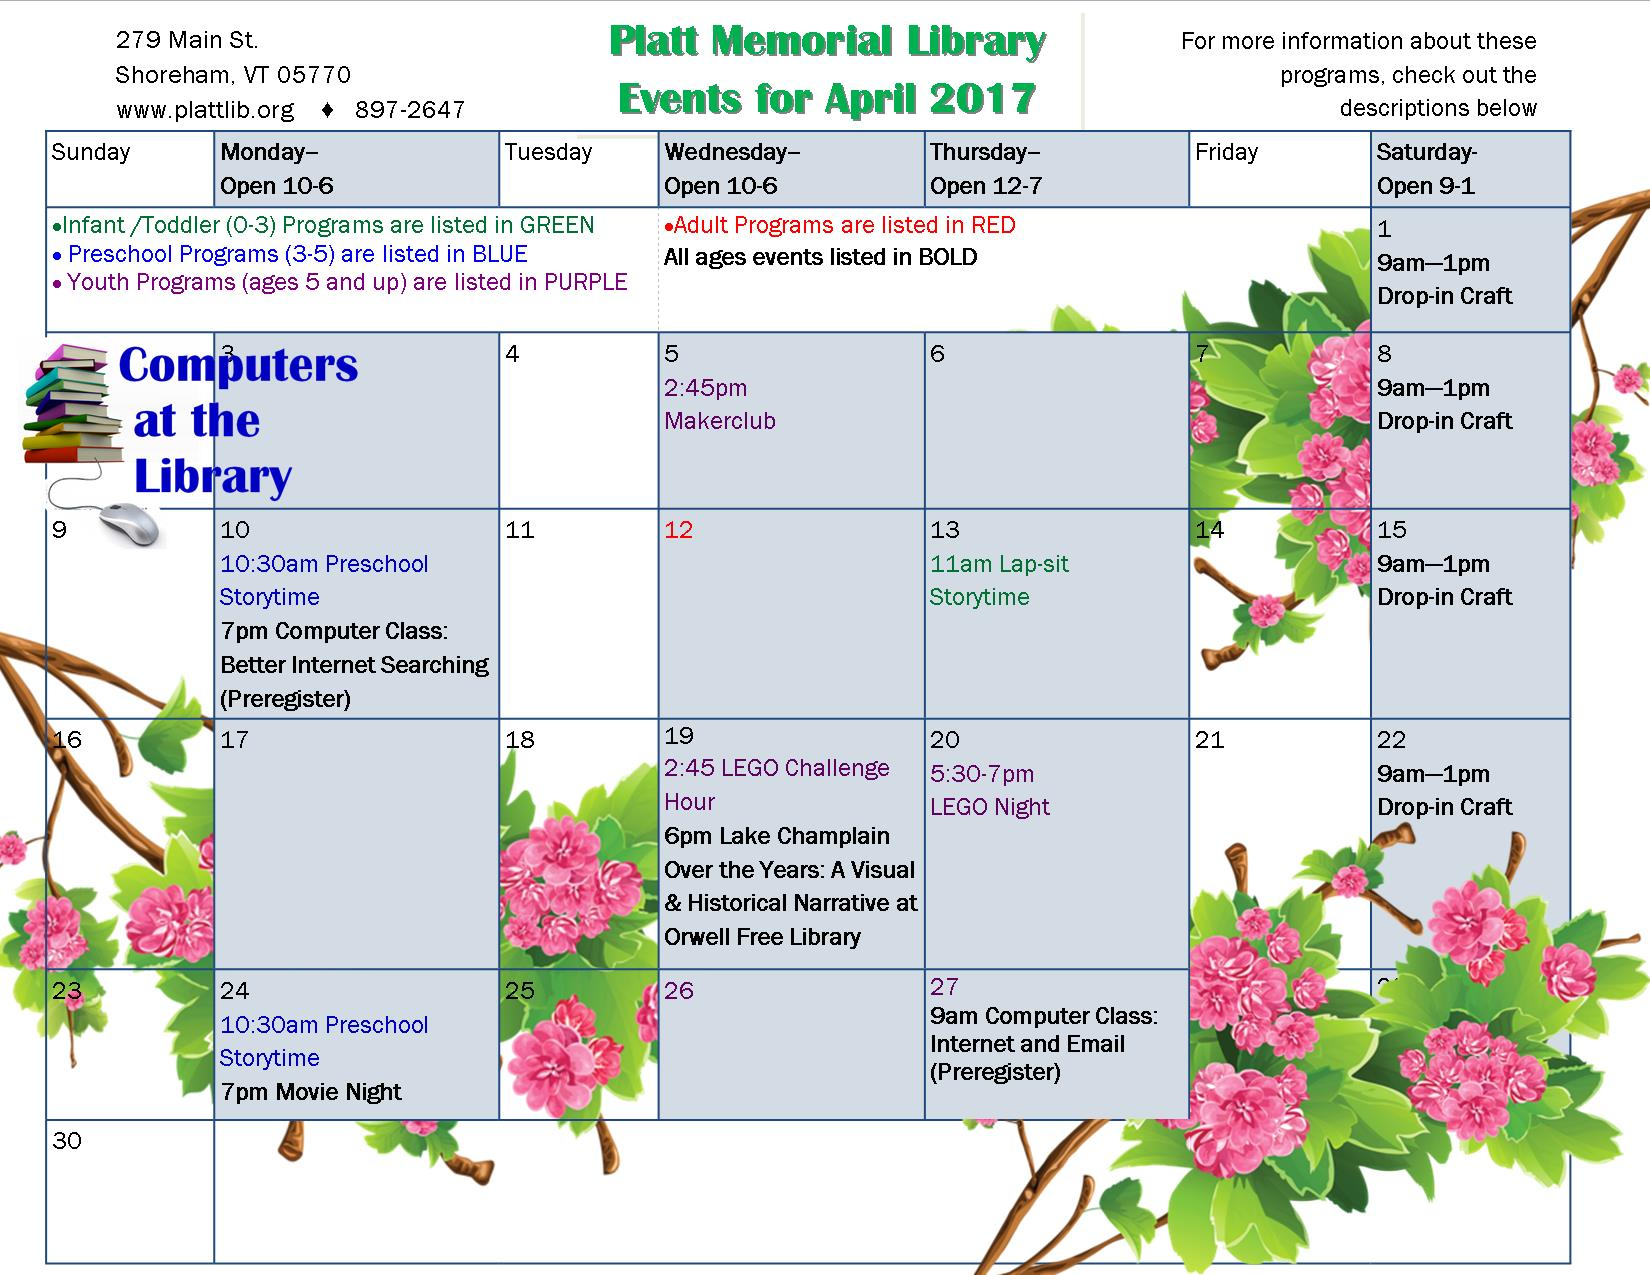 Calendar of events for April. See listing below for details.